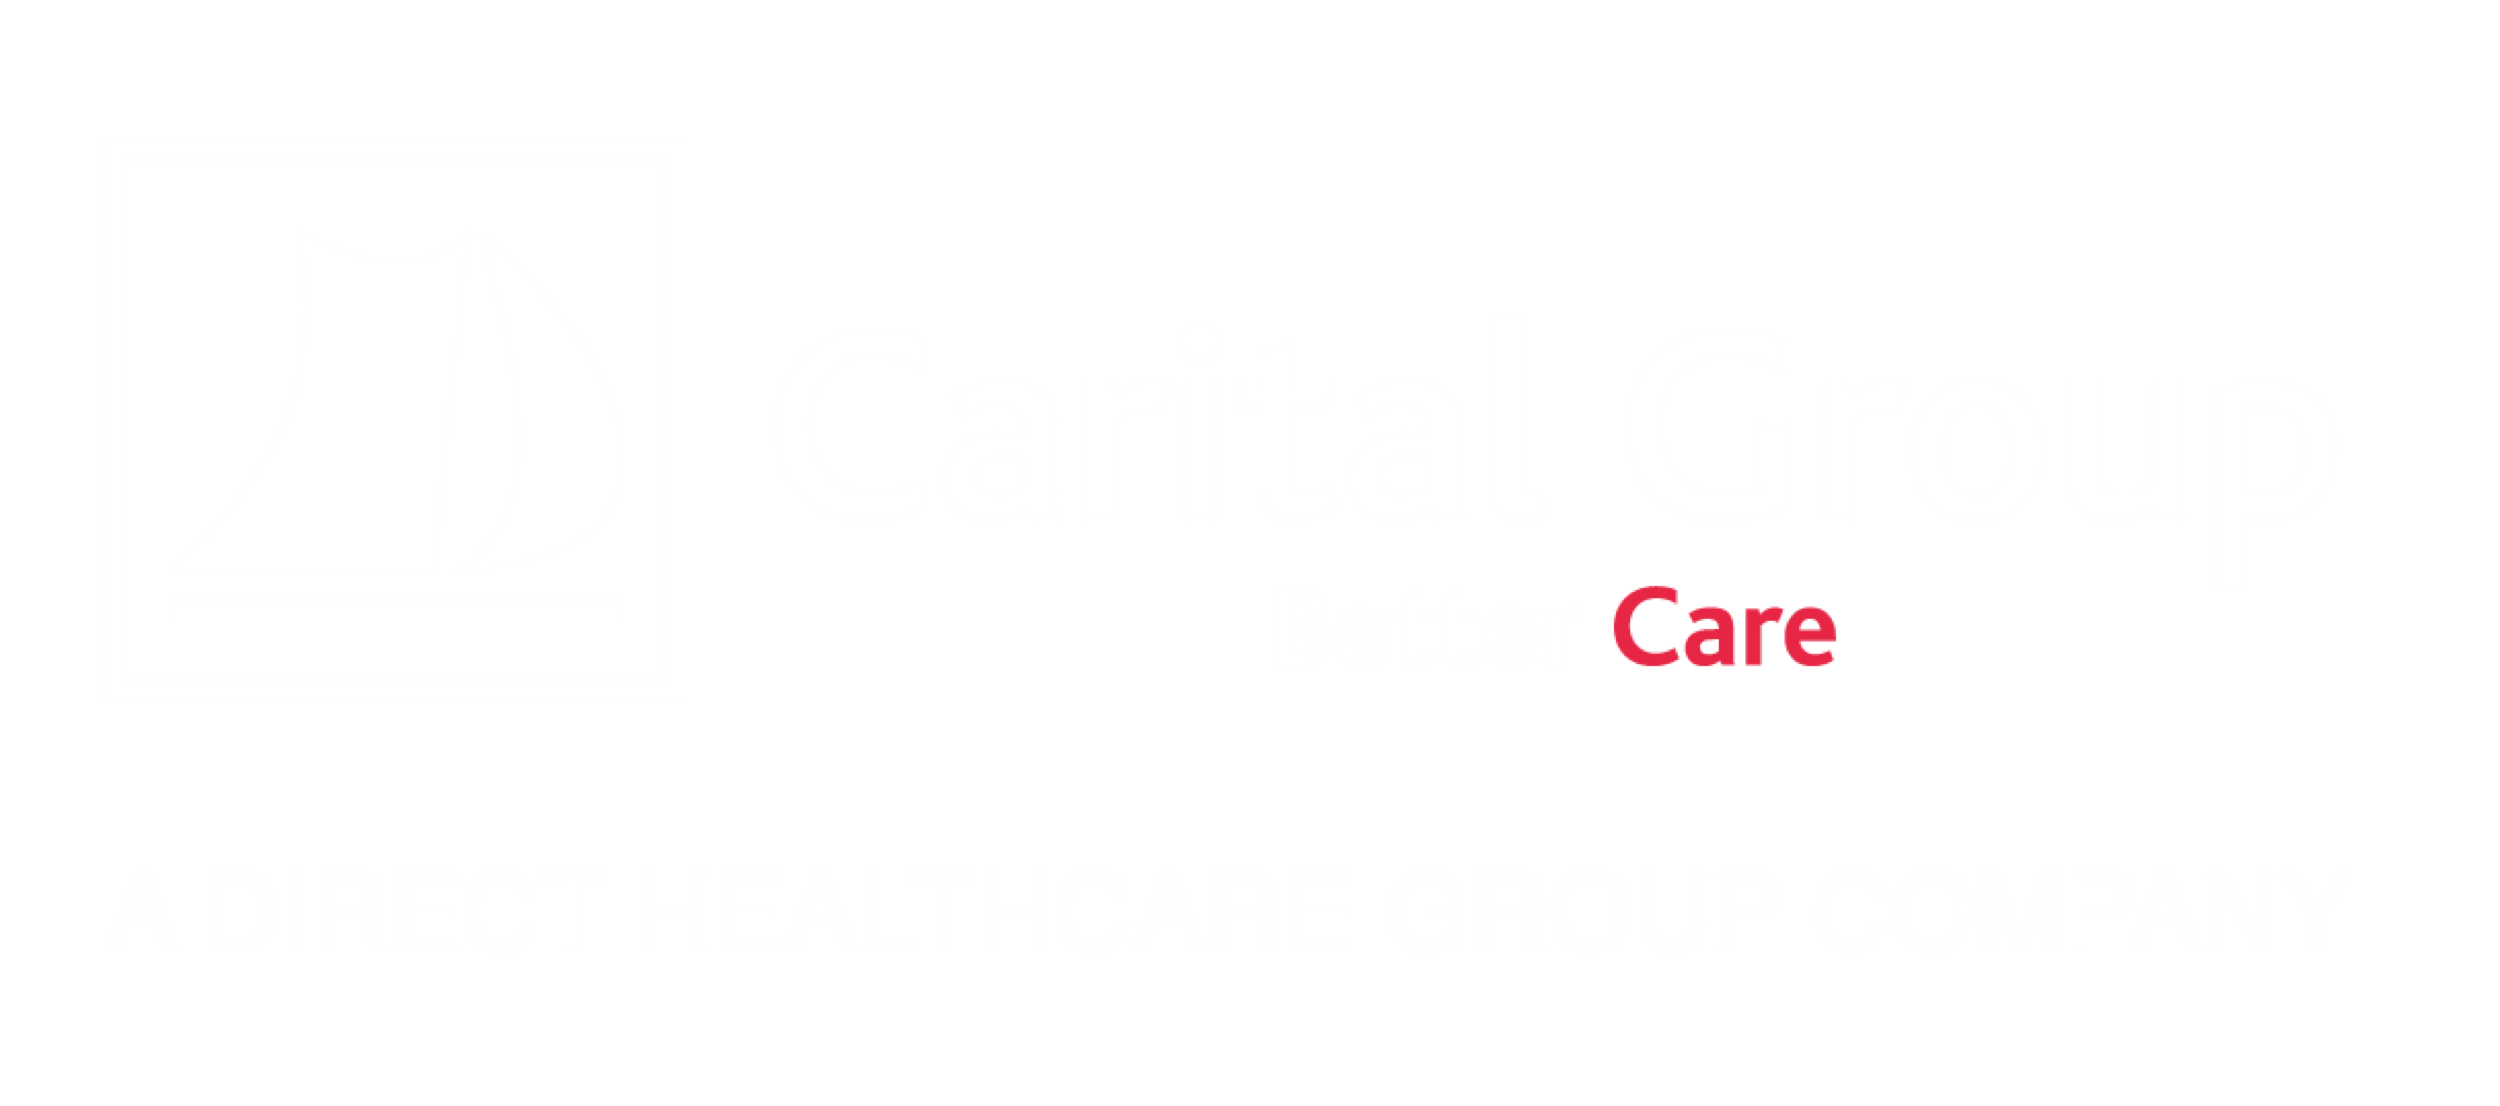 Carita Group - Better Care